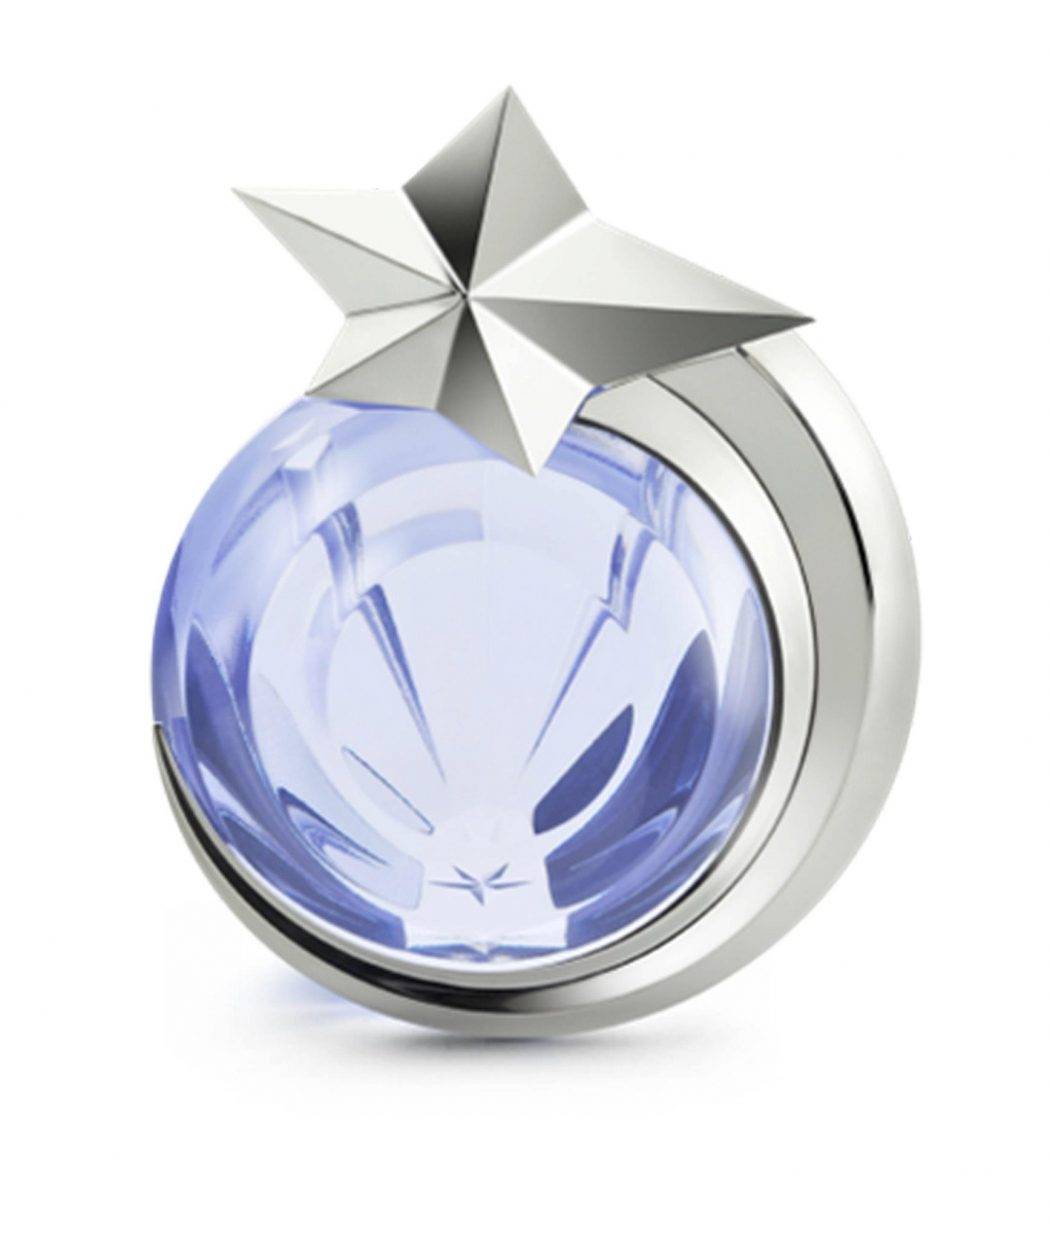 THIERRY-MUGLER-ANGEL-EDT-80ML Healthy Nails : Vital Supplements To Keep It Healthy - Graspers.com